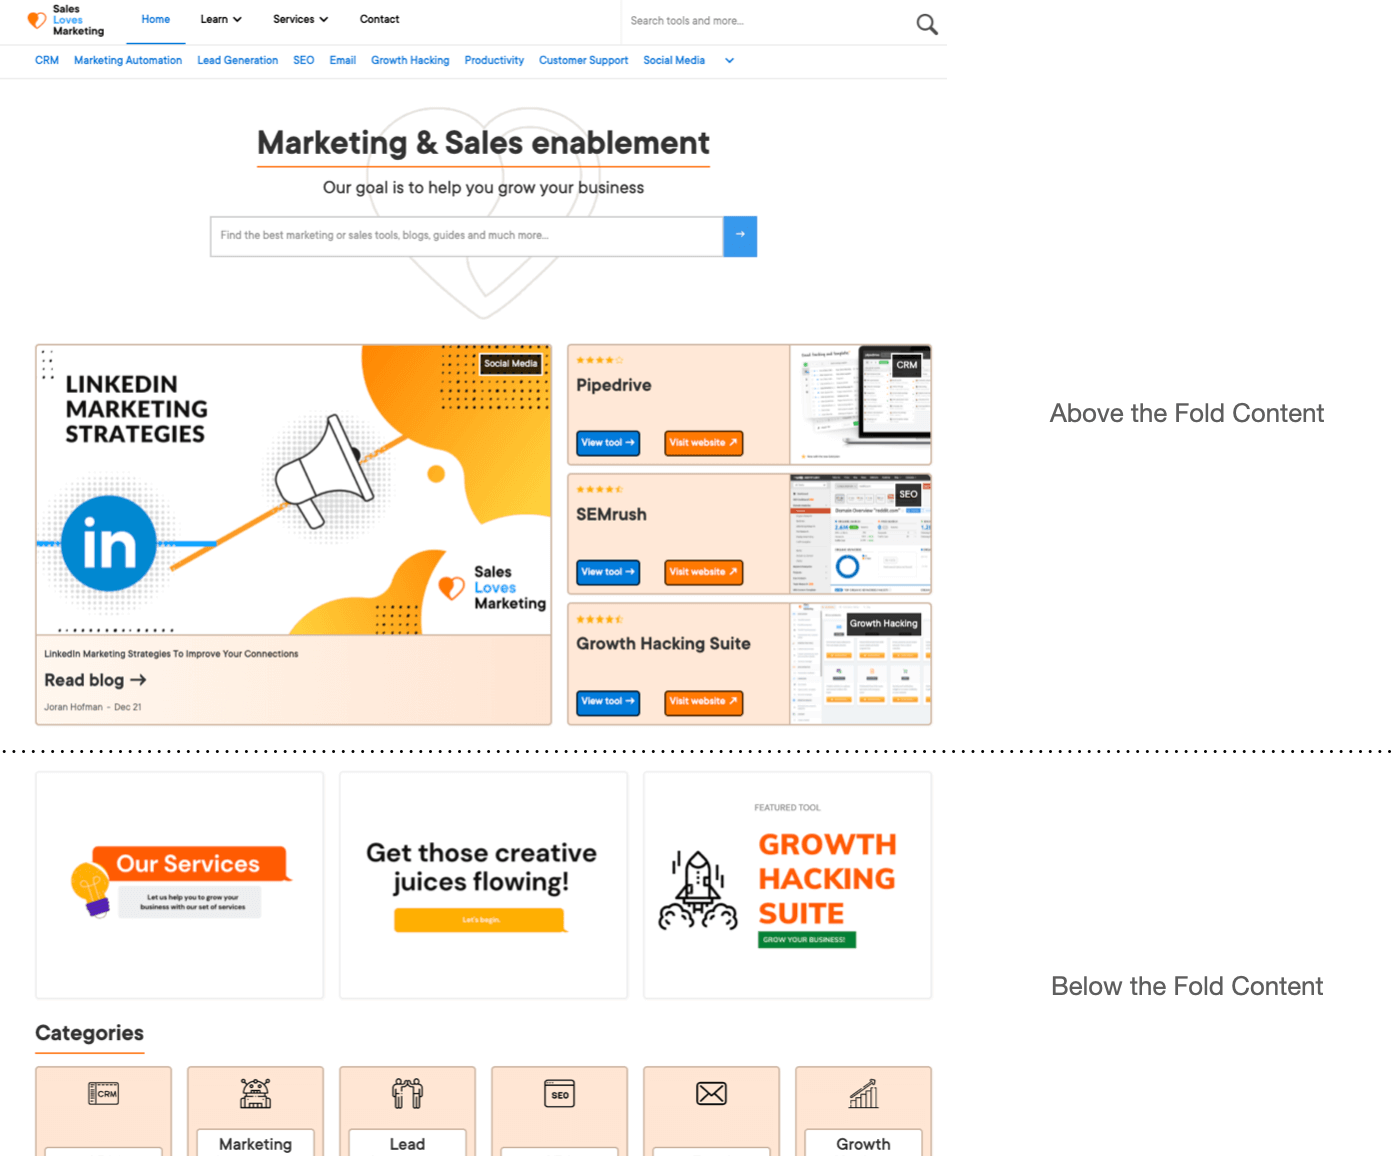 example on above and below the fold content of a website